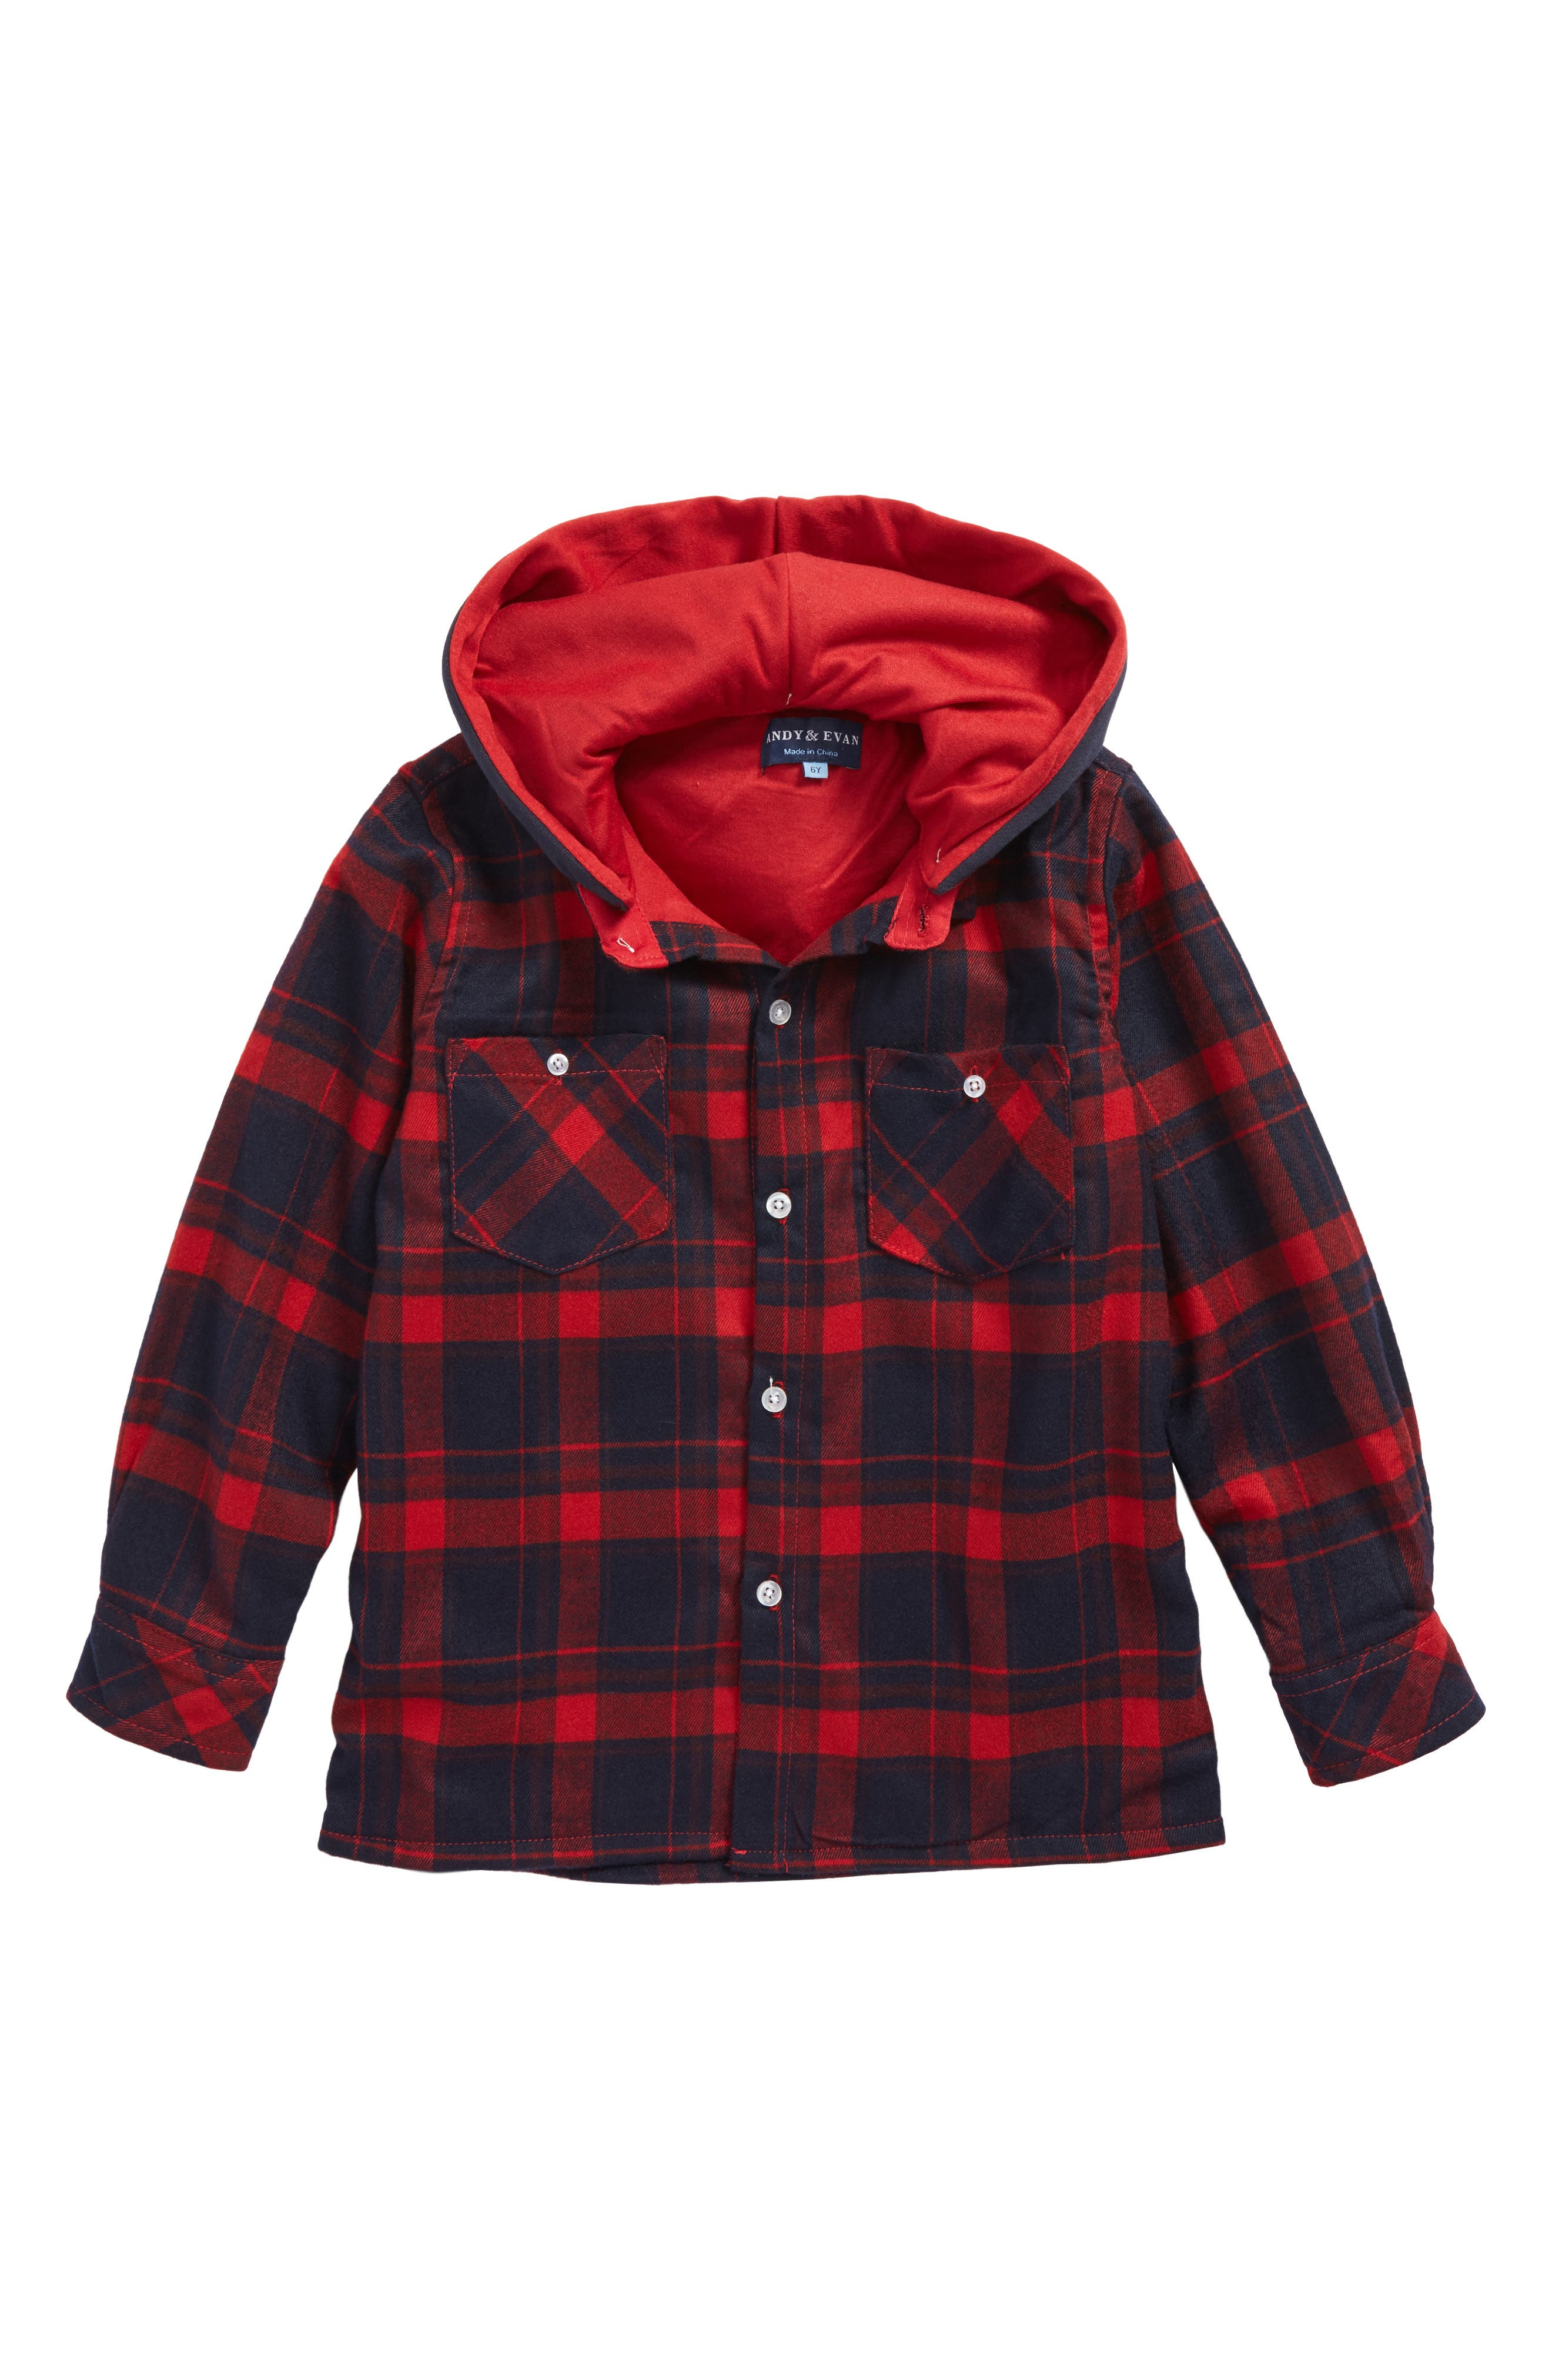 Andy & Even Hooded Flannel Shirt,                         Main,                         color,